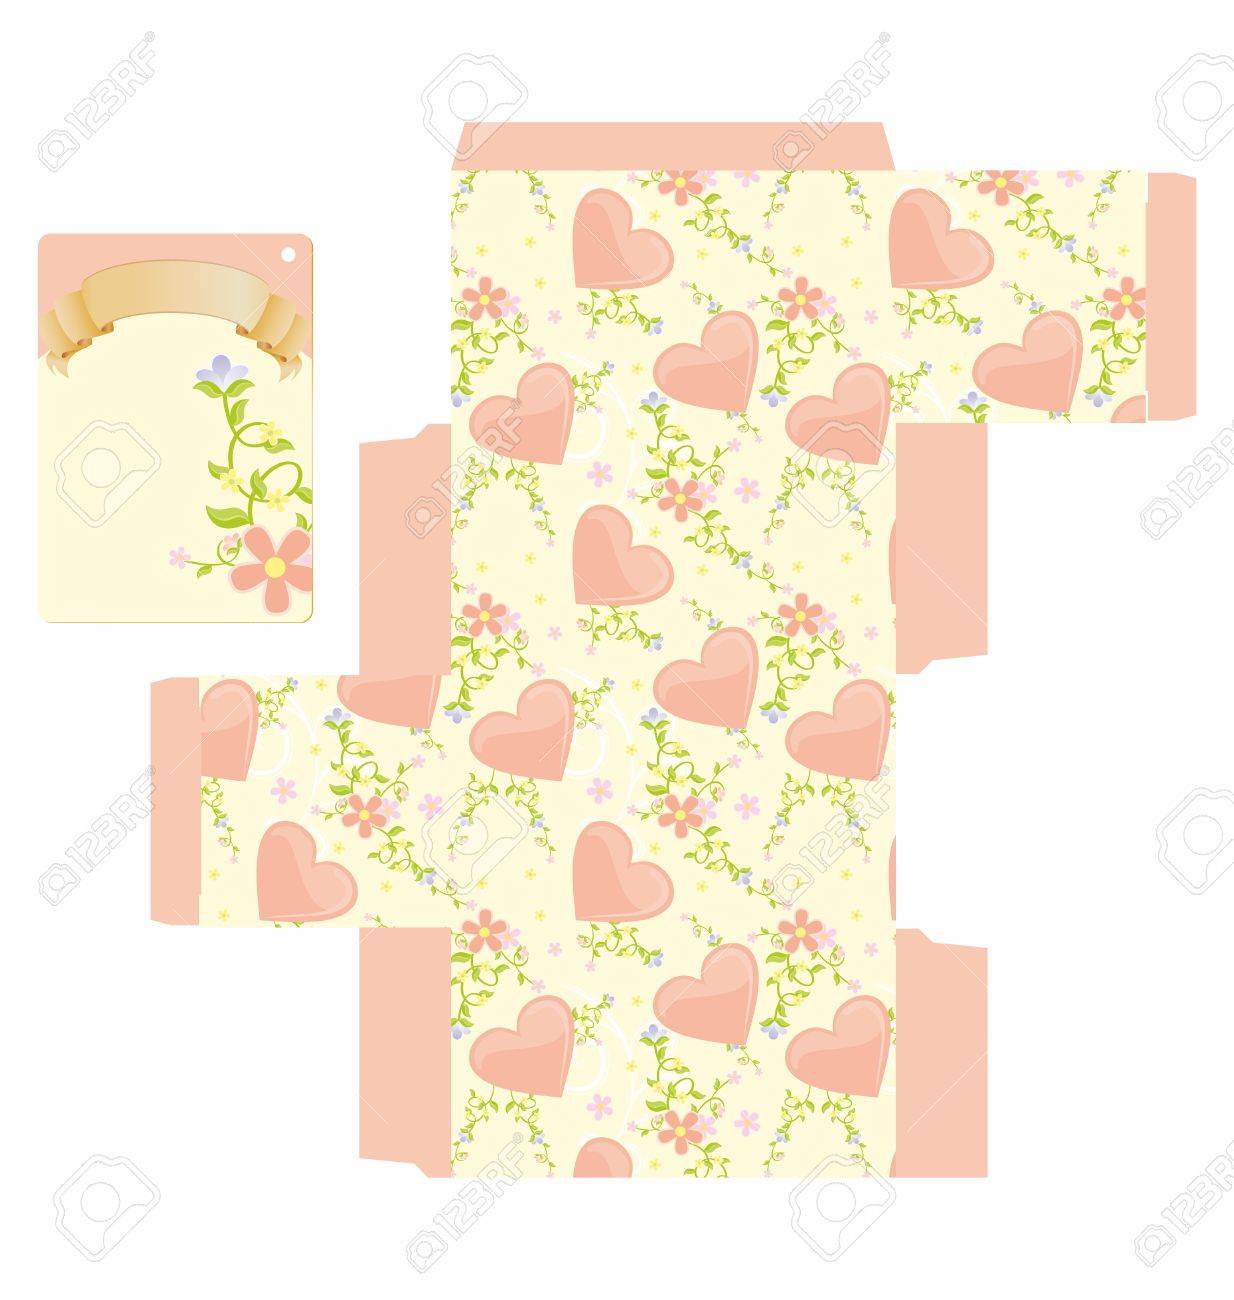 Favor box die cut with hearts floral pattern and empty label Stock Photo - 13737435